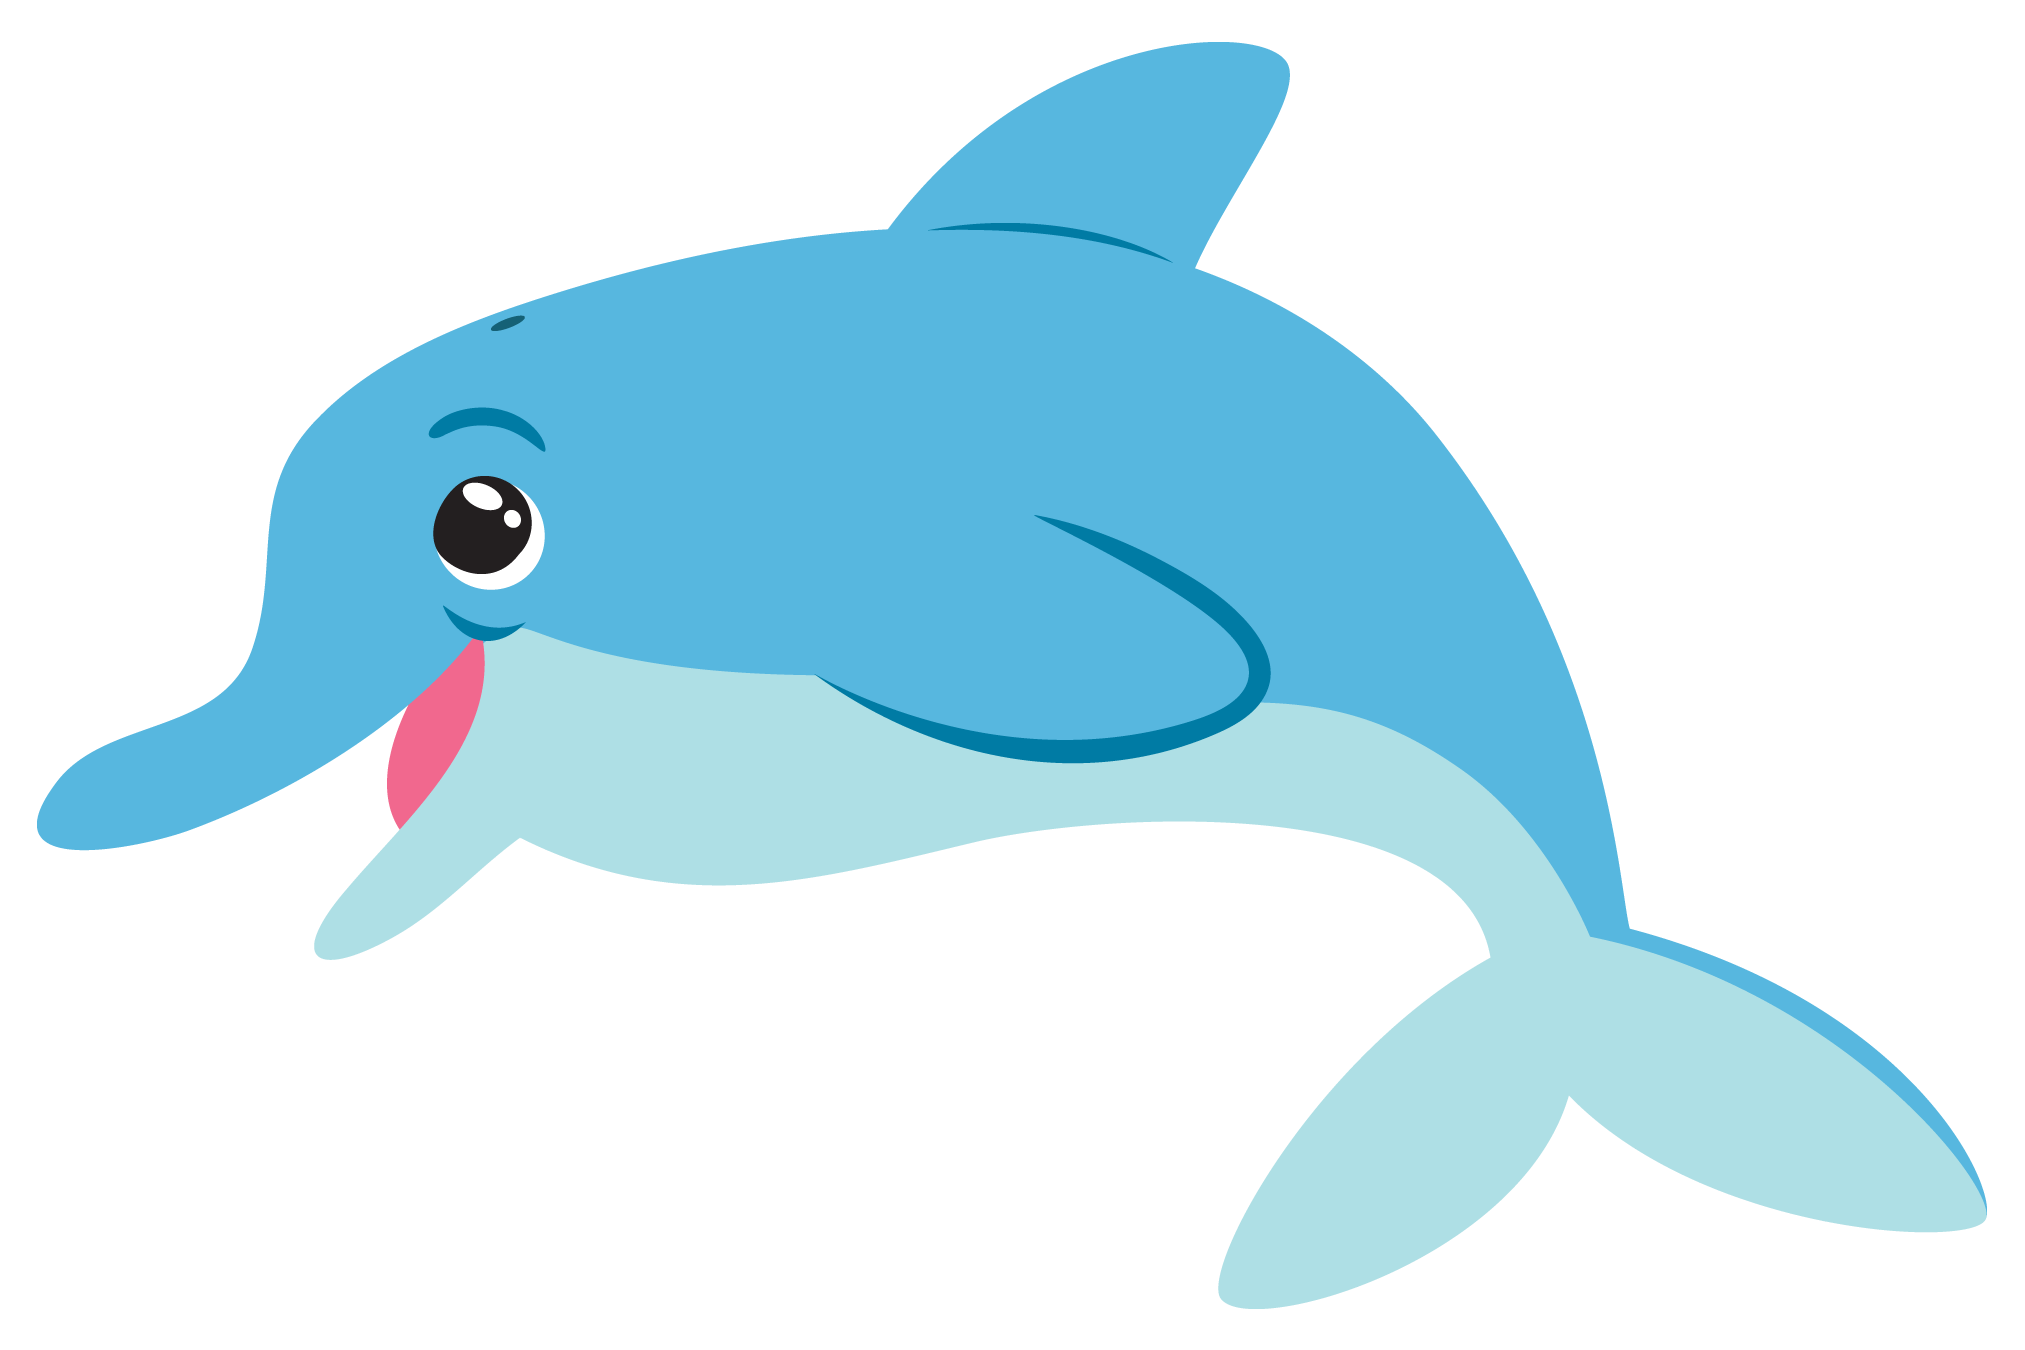 ... -dolphin-clipart-clipart-panda-free-clipart-images-HDbr1q-clipart.png